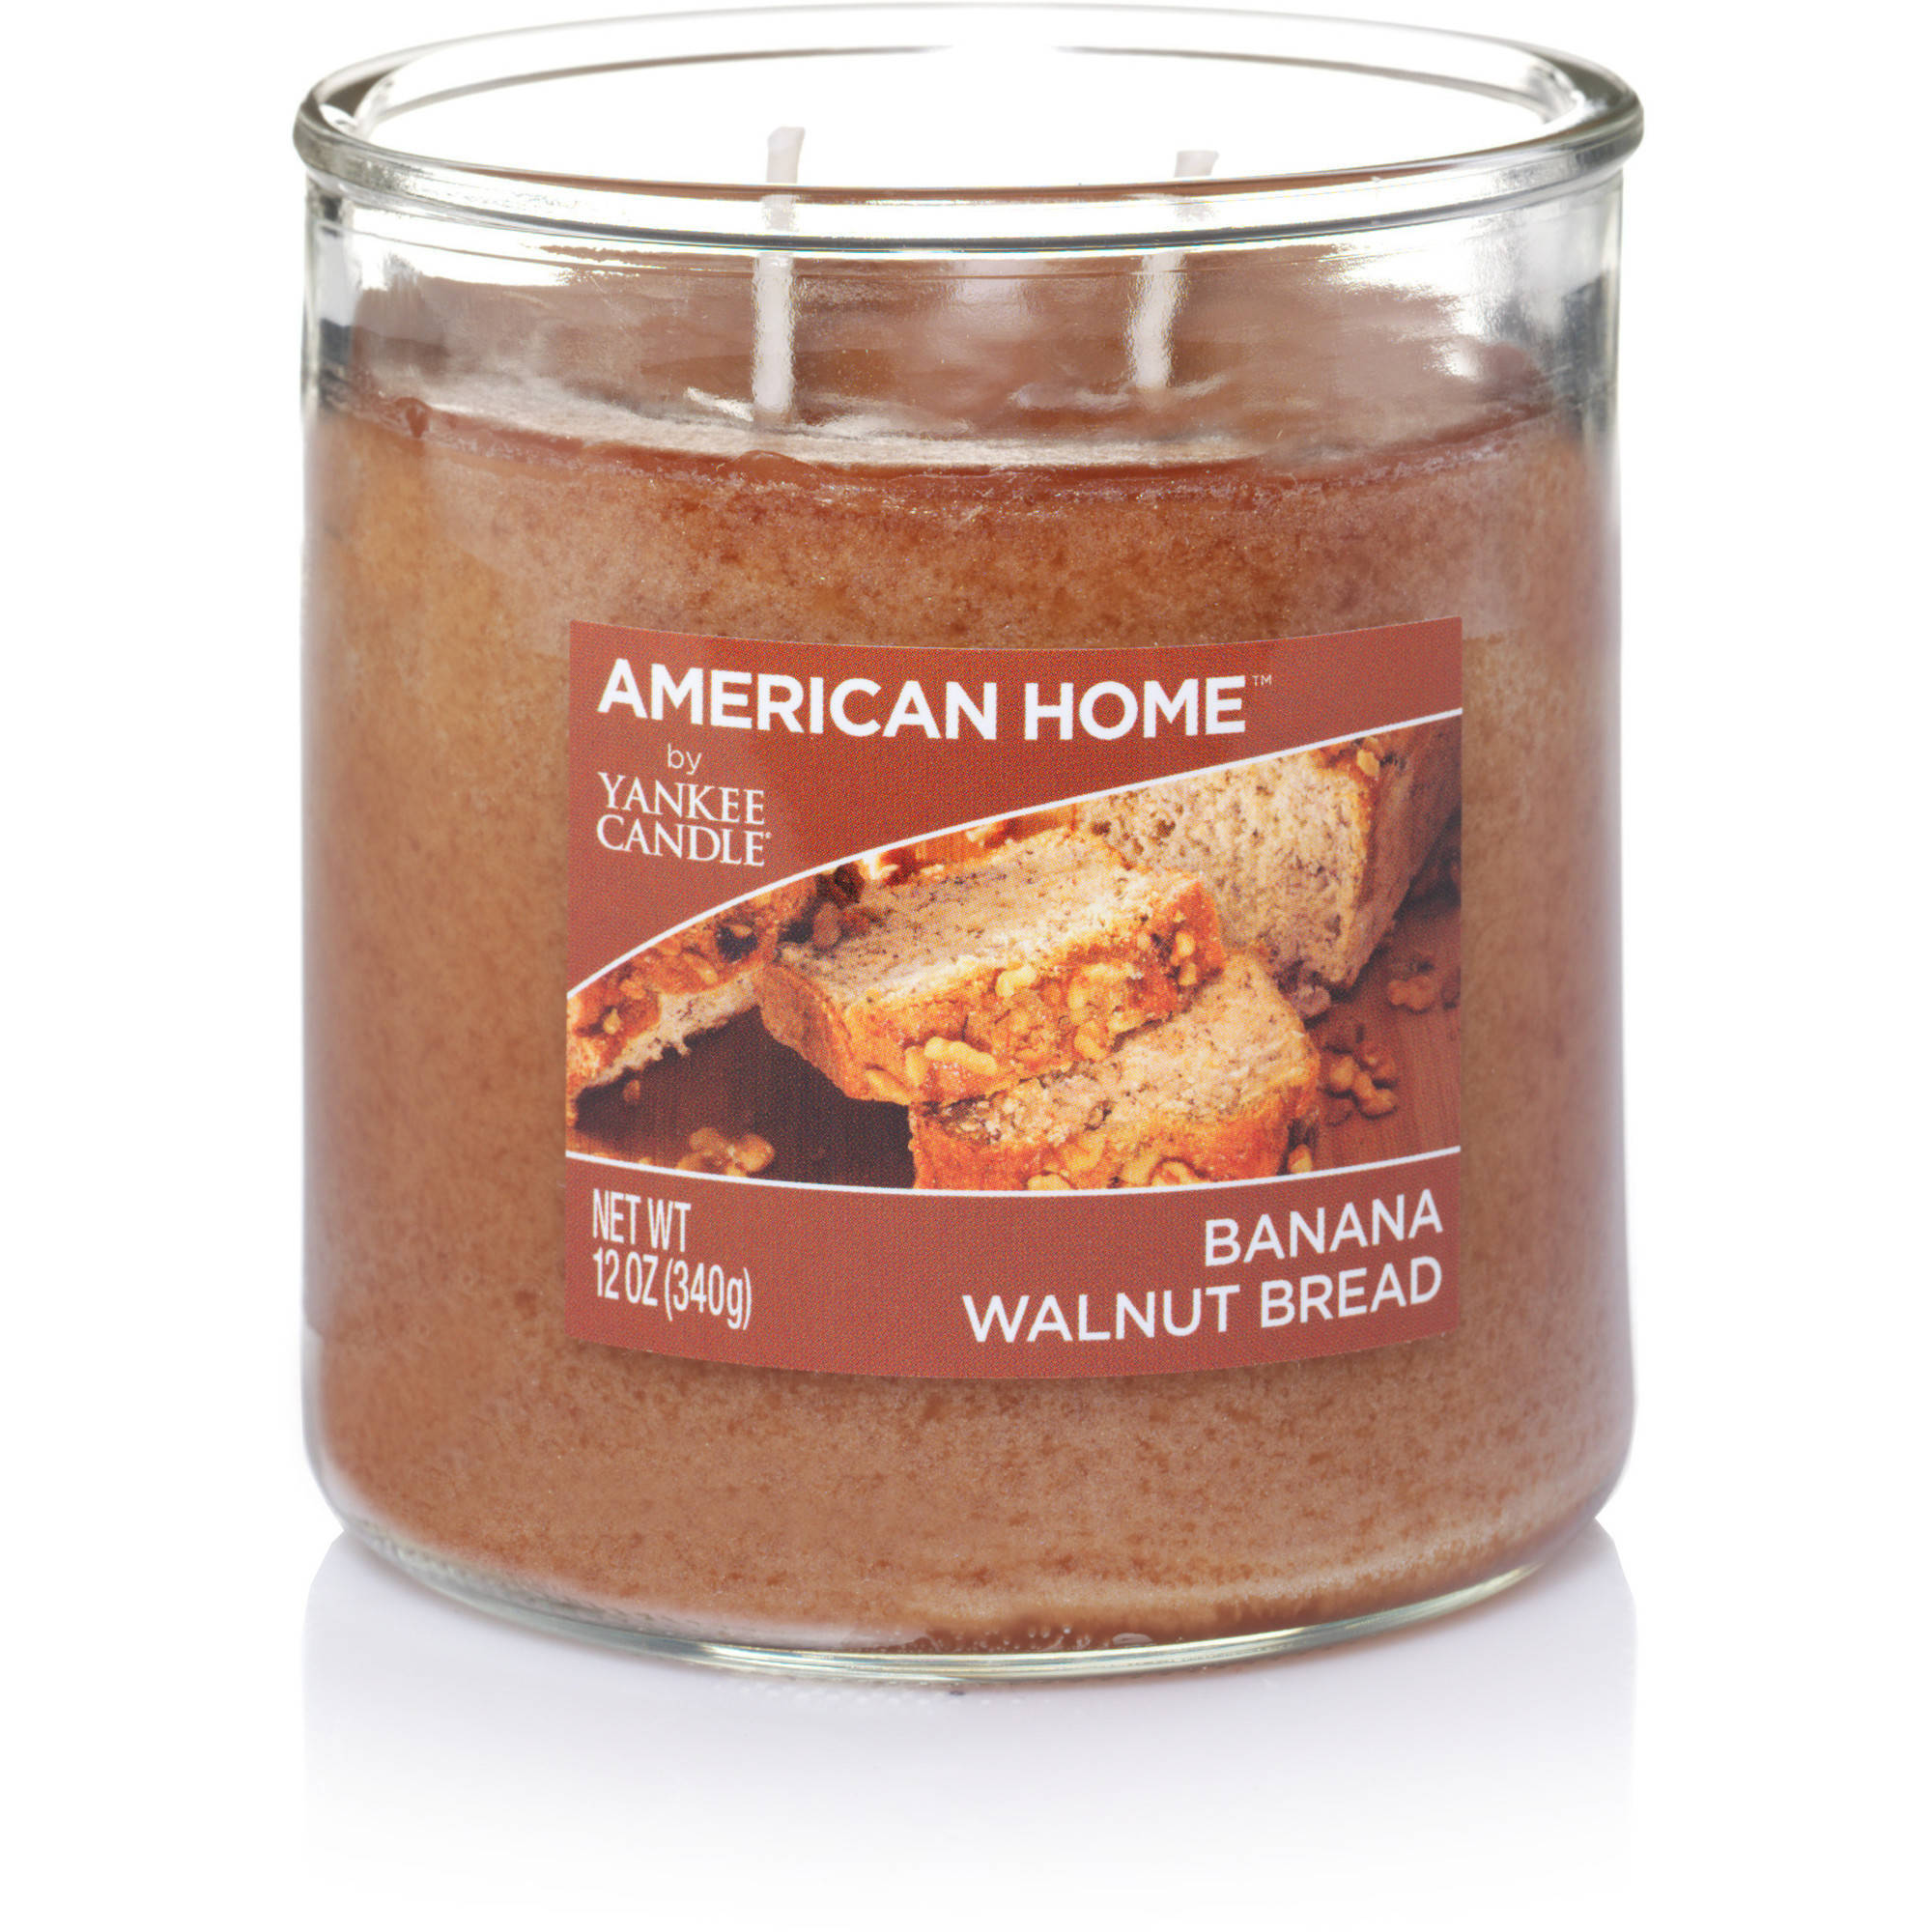 American Home by Yankee Candle Banana Walnut Bread, 12 oz Medium 2-Wick Tumbler